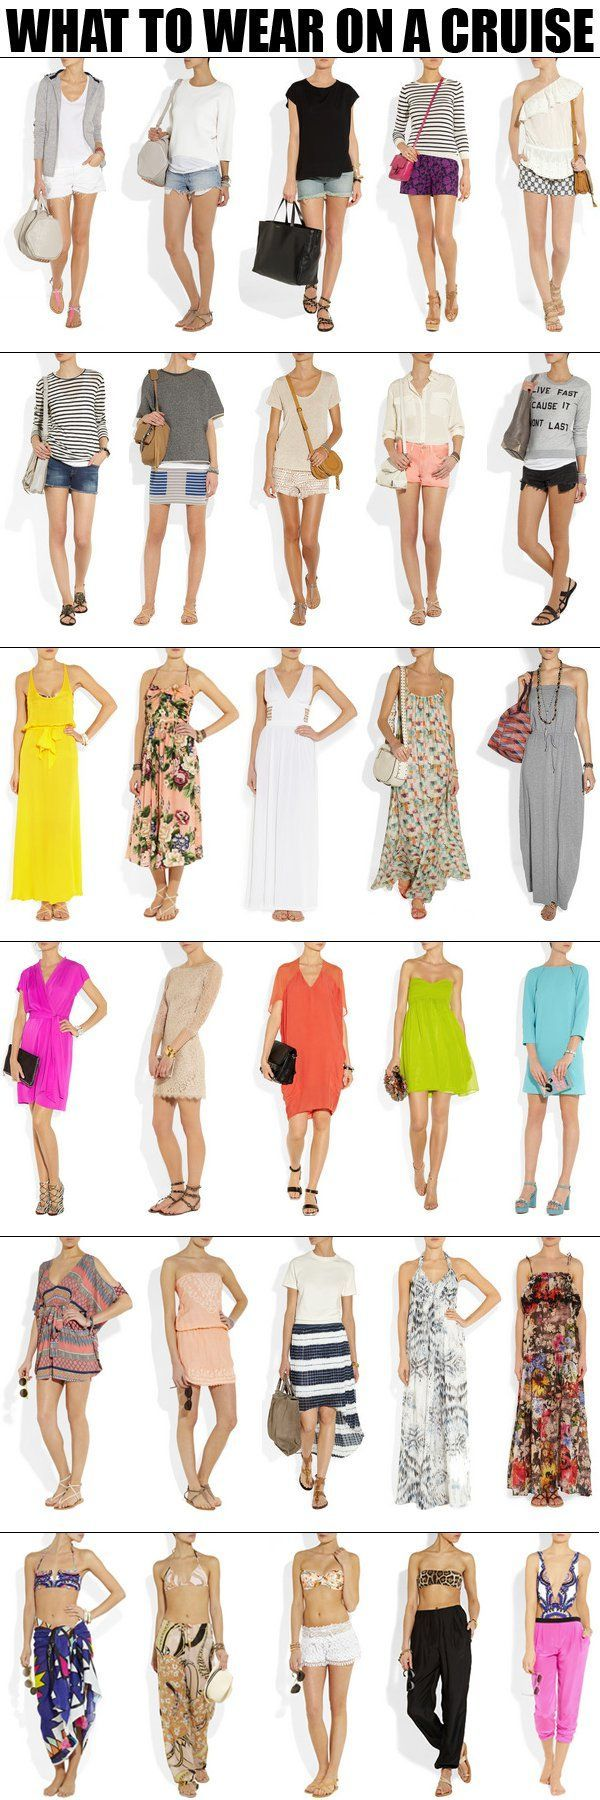 Take a look at the following images and get ideas on Caribbean cruise outfits and packing lists.